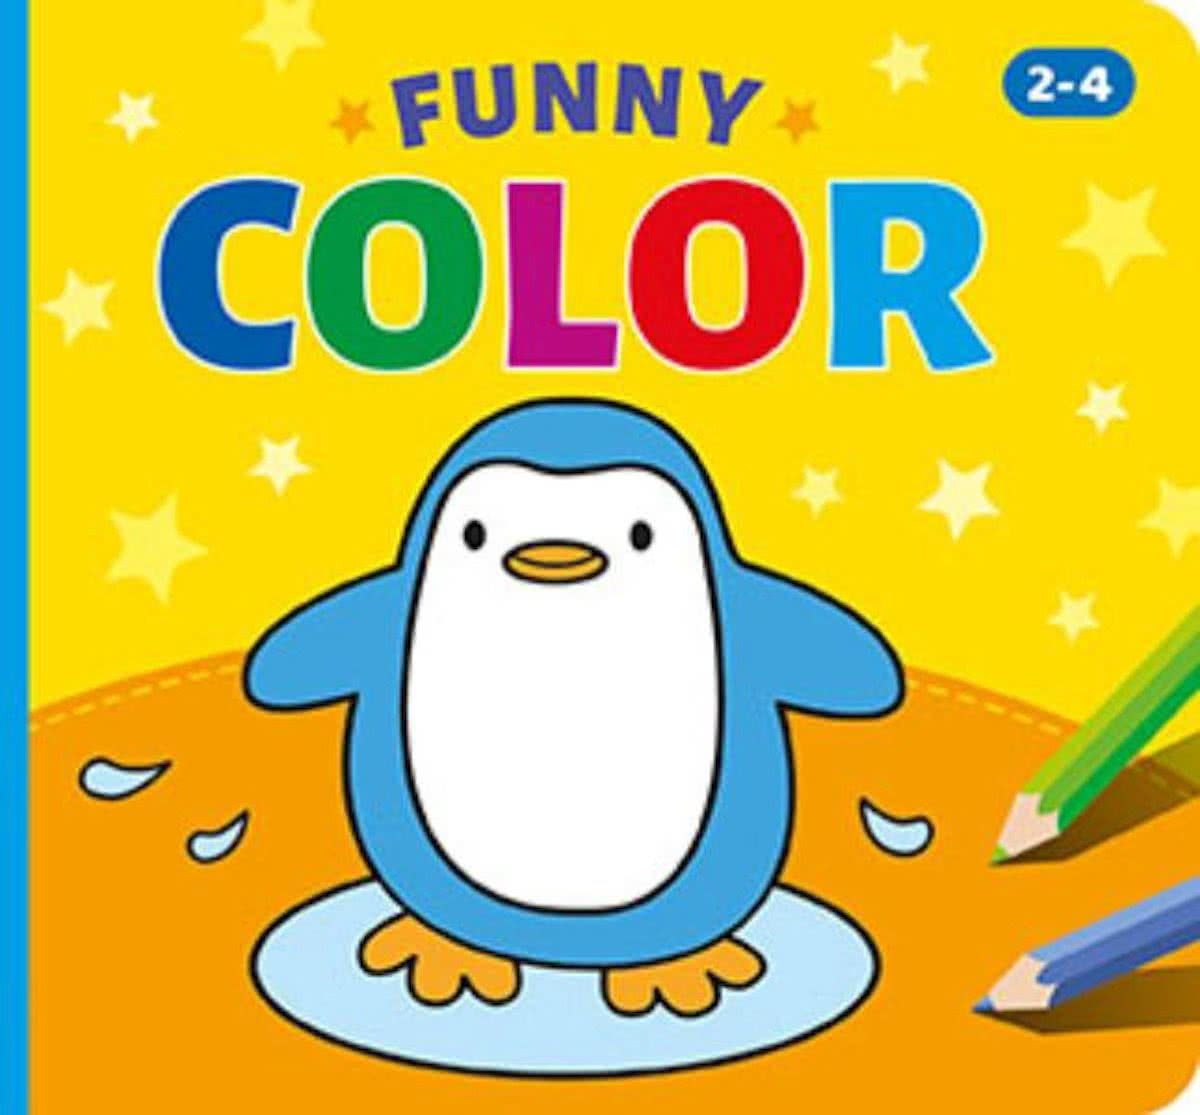 Funny color (2-4 j.) / funny color (2-4 a.)